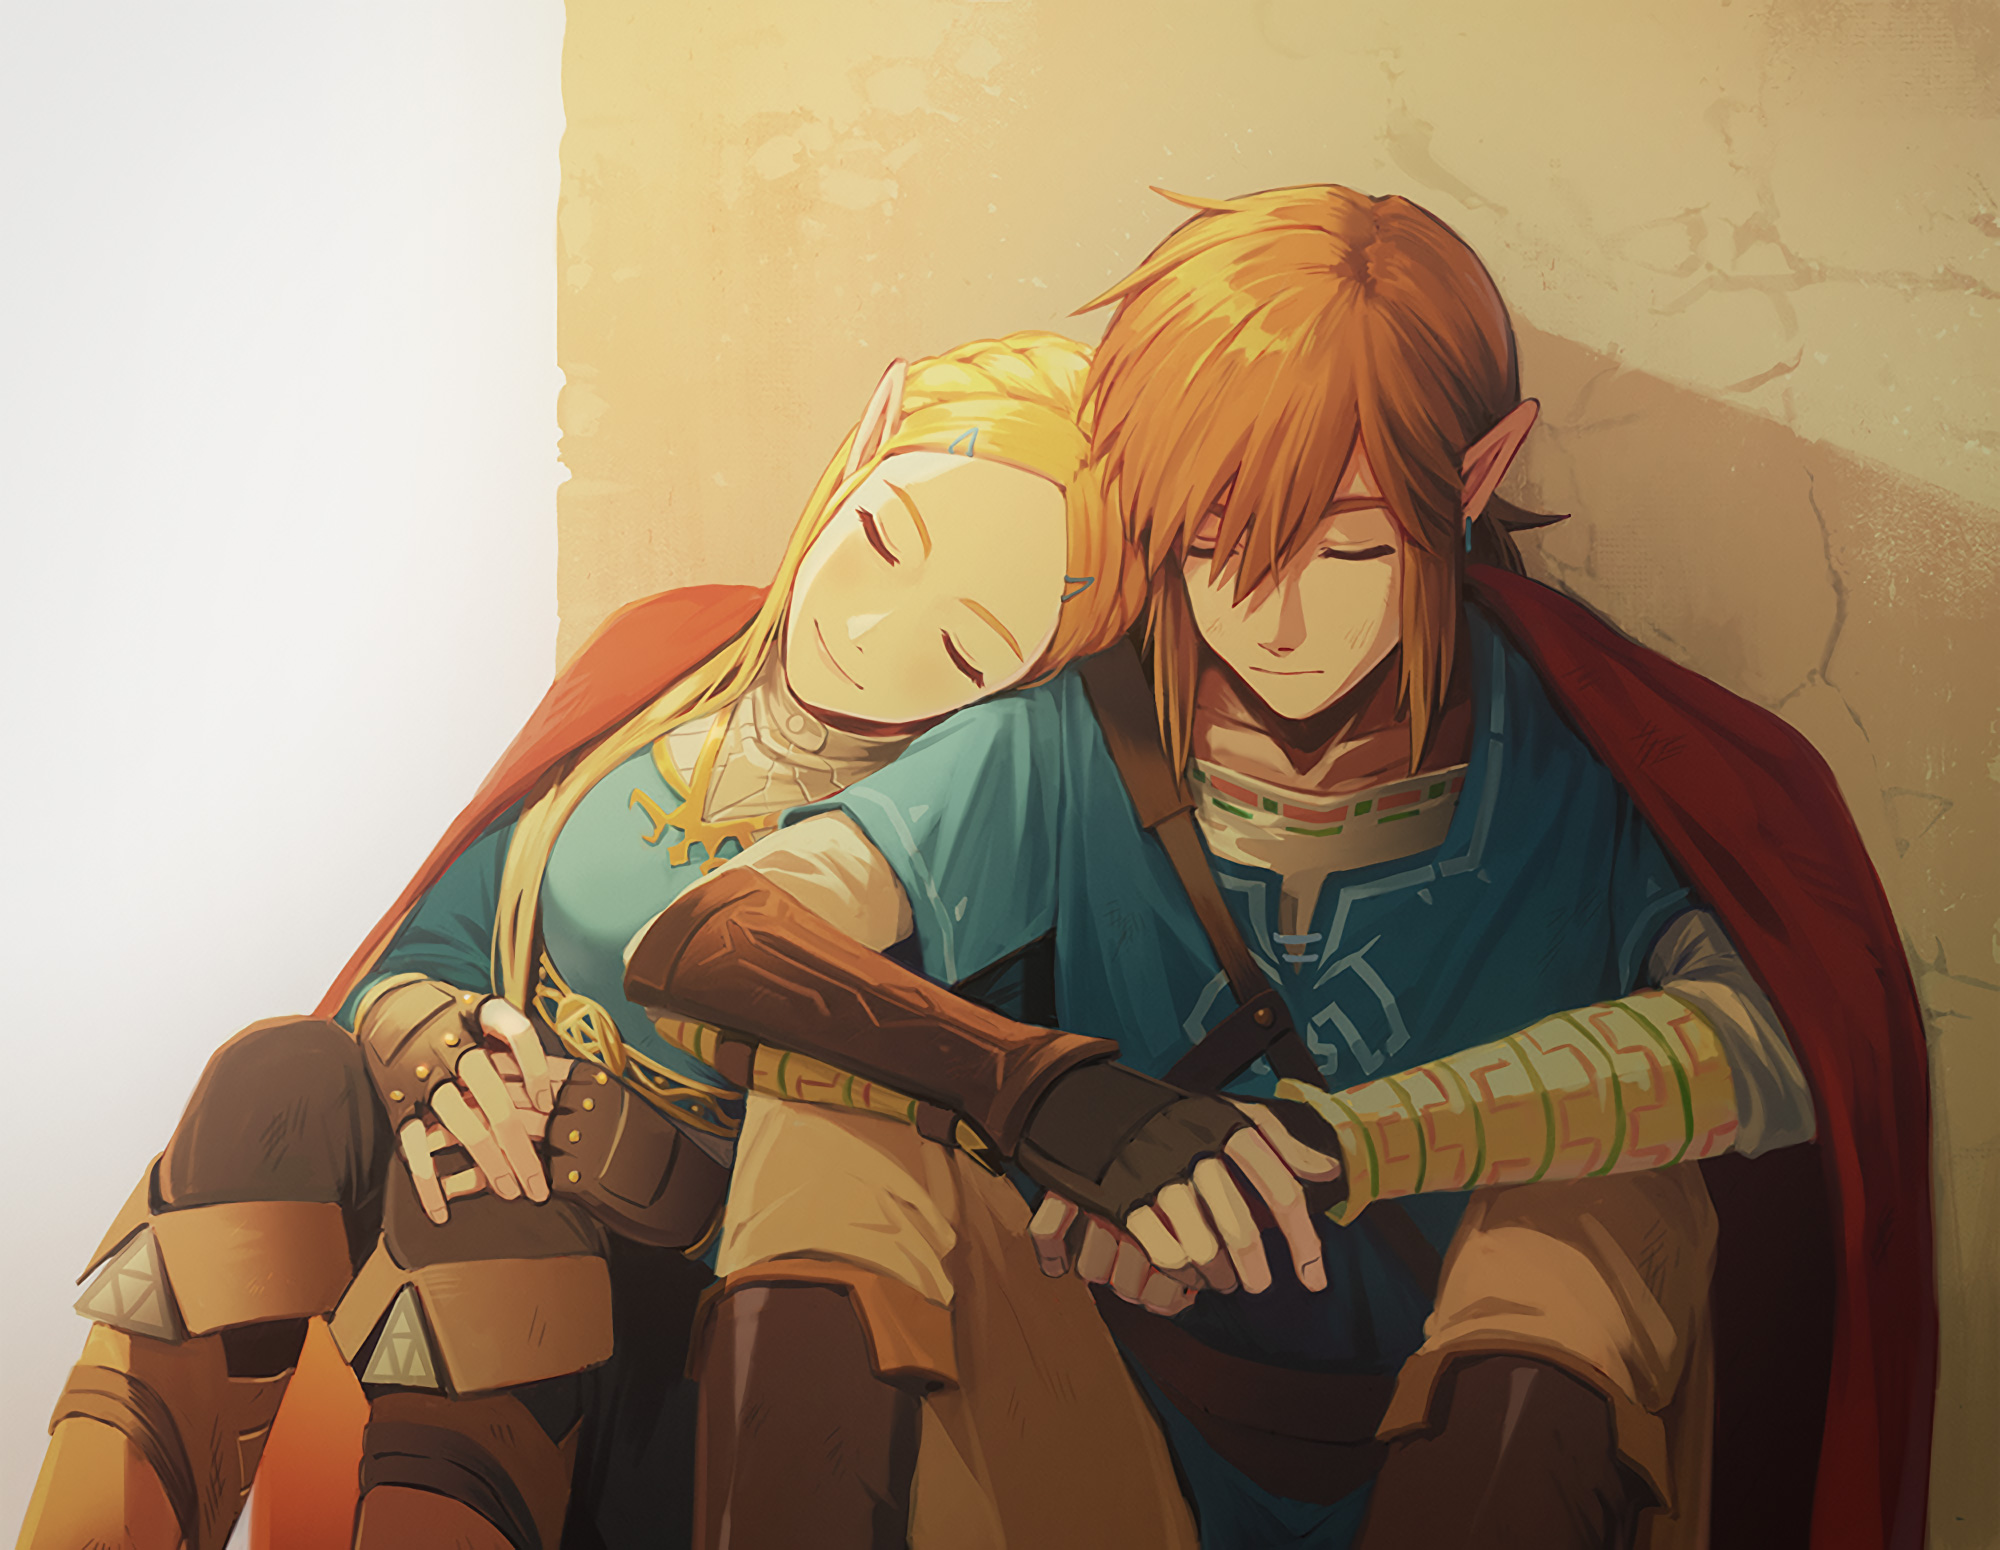 1920x1200 Link And Zelda In The Legend Of Zelda Breath Of The Wild